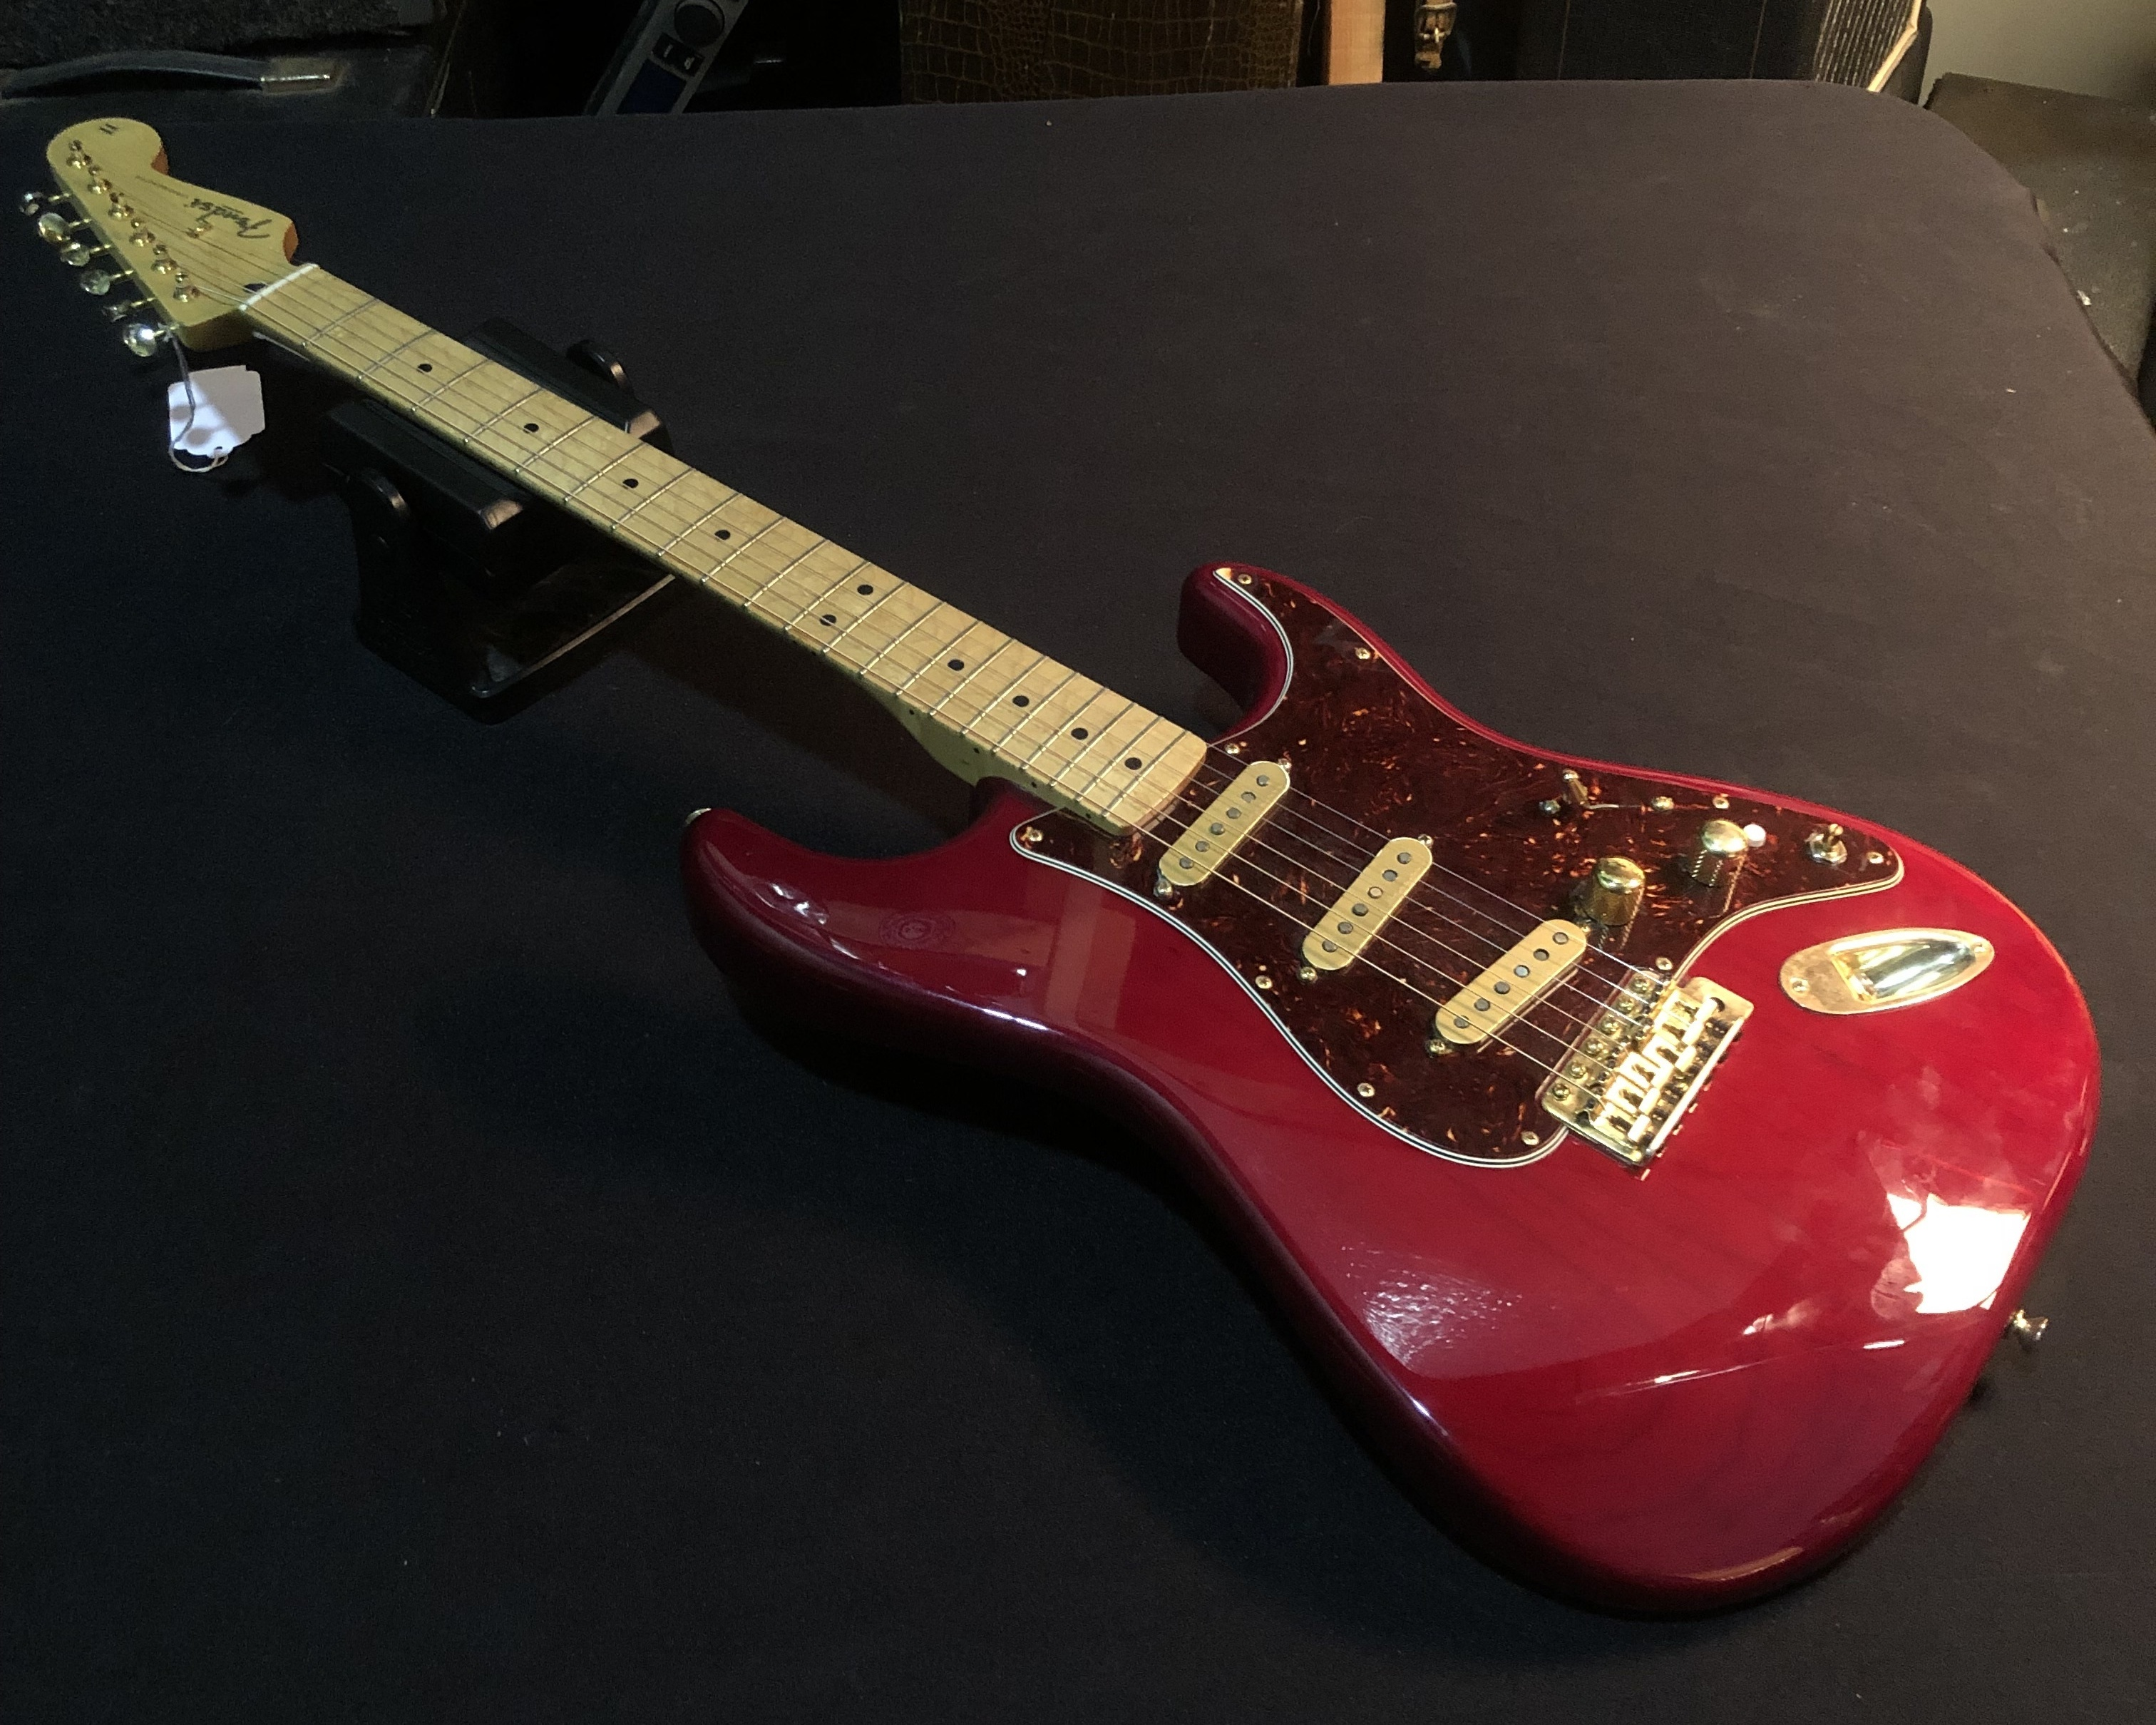 FENDER - Deluxe Player Stratocaster Transparent Red 2013